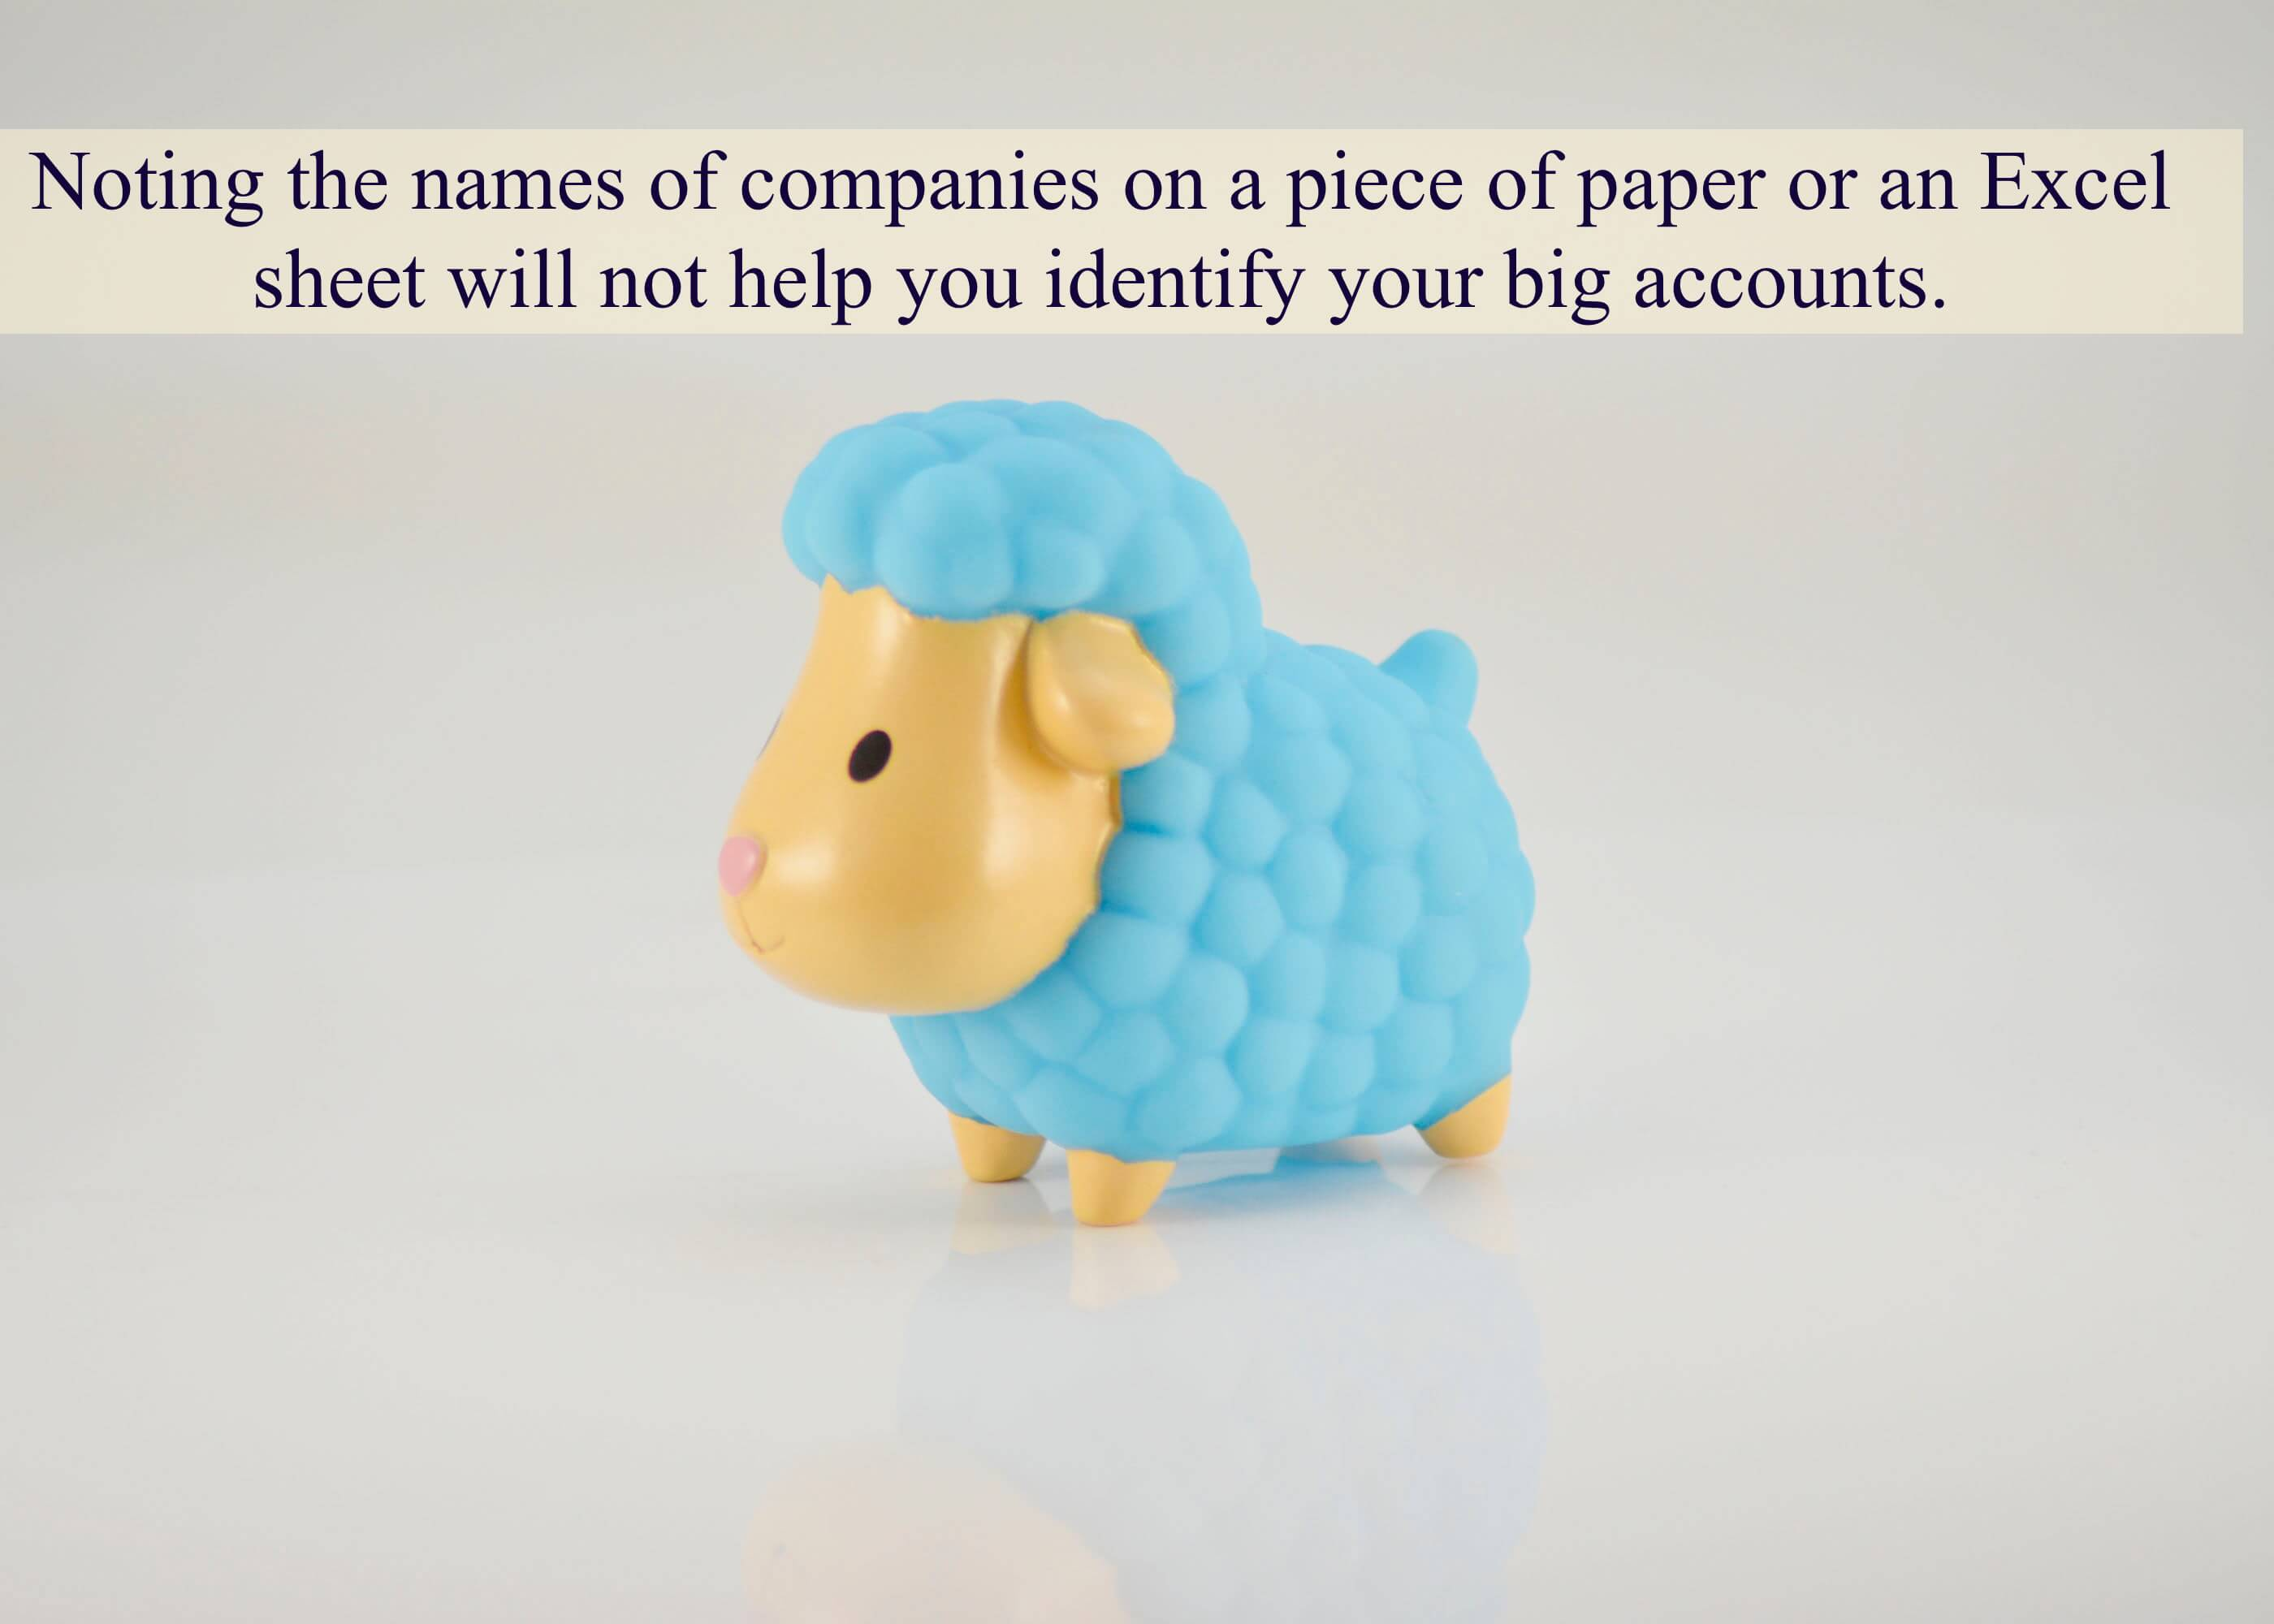 Noting the names of companies on a piece of paper or an Excel sheet will not help you identify your big accounts.